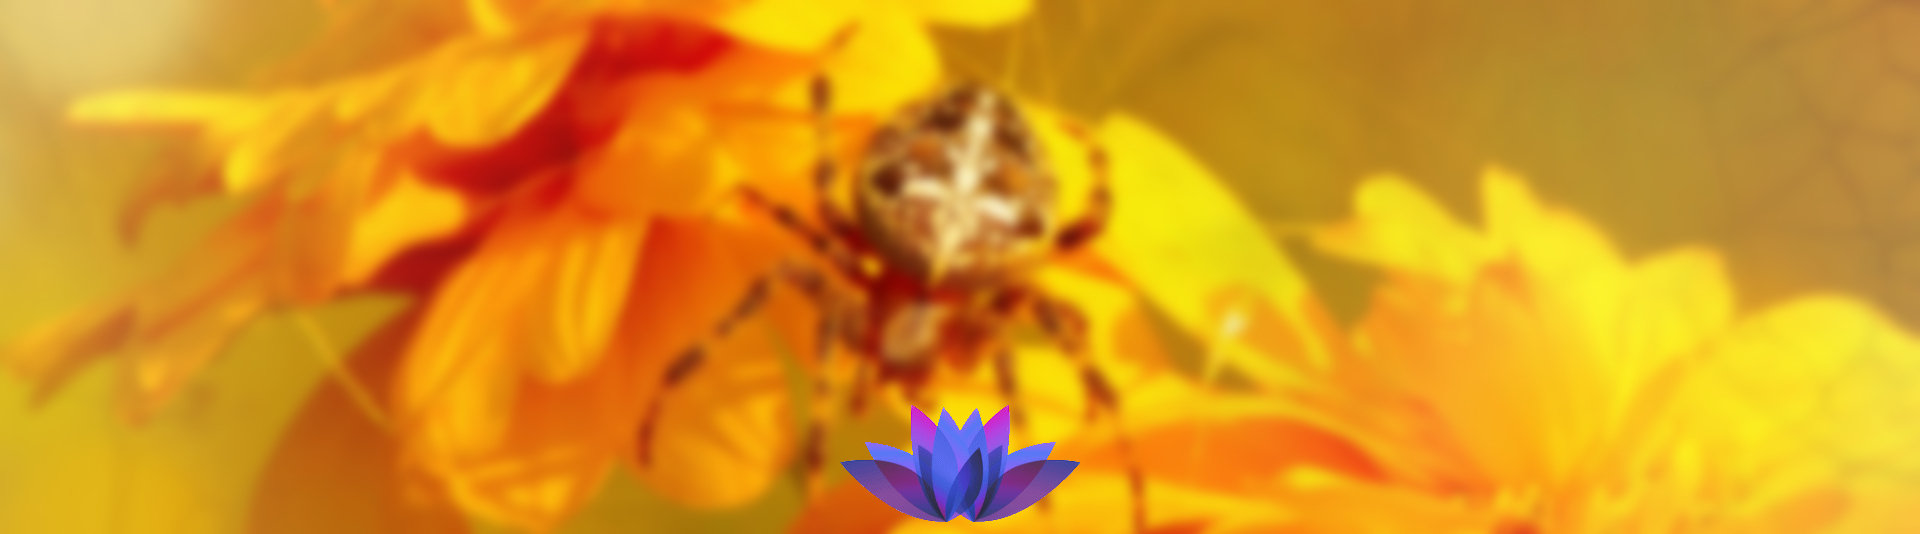 Phobias can be managed with hypnotherapy help - manage your reactions.